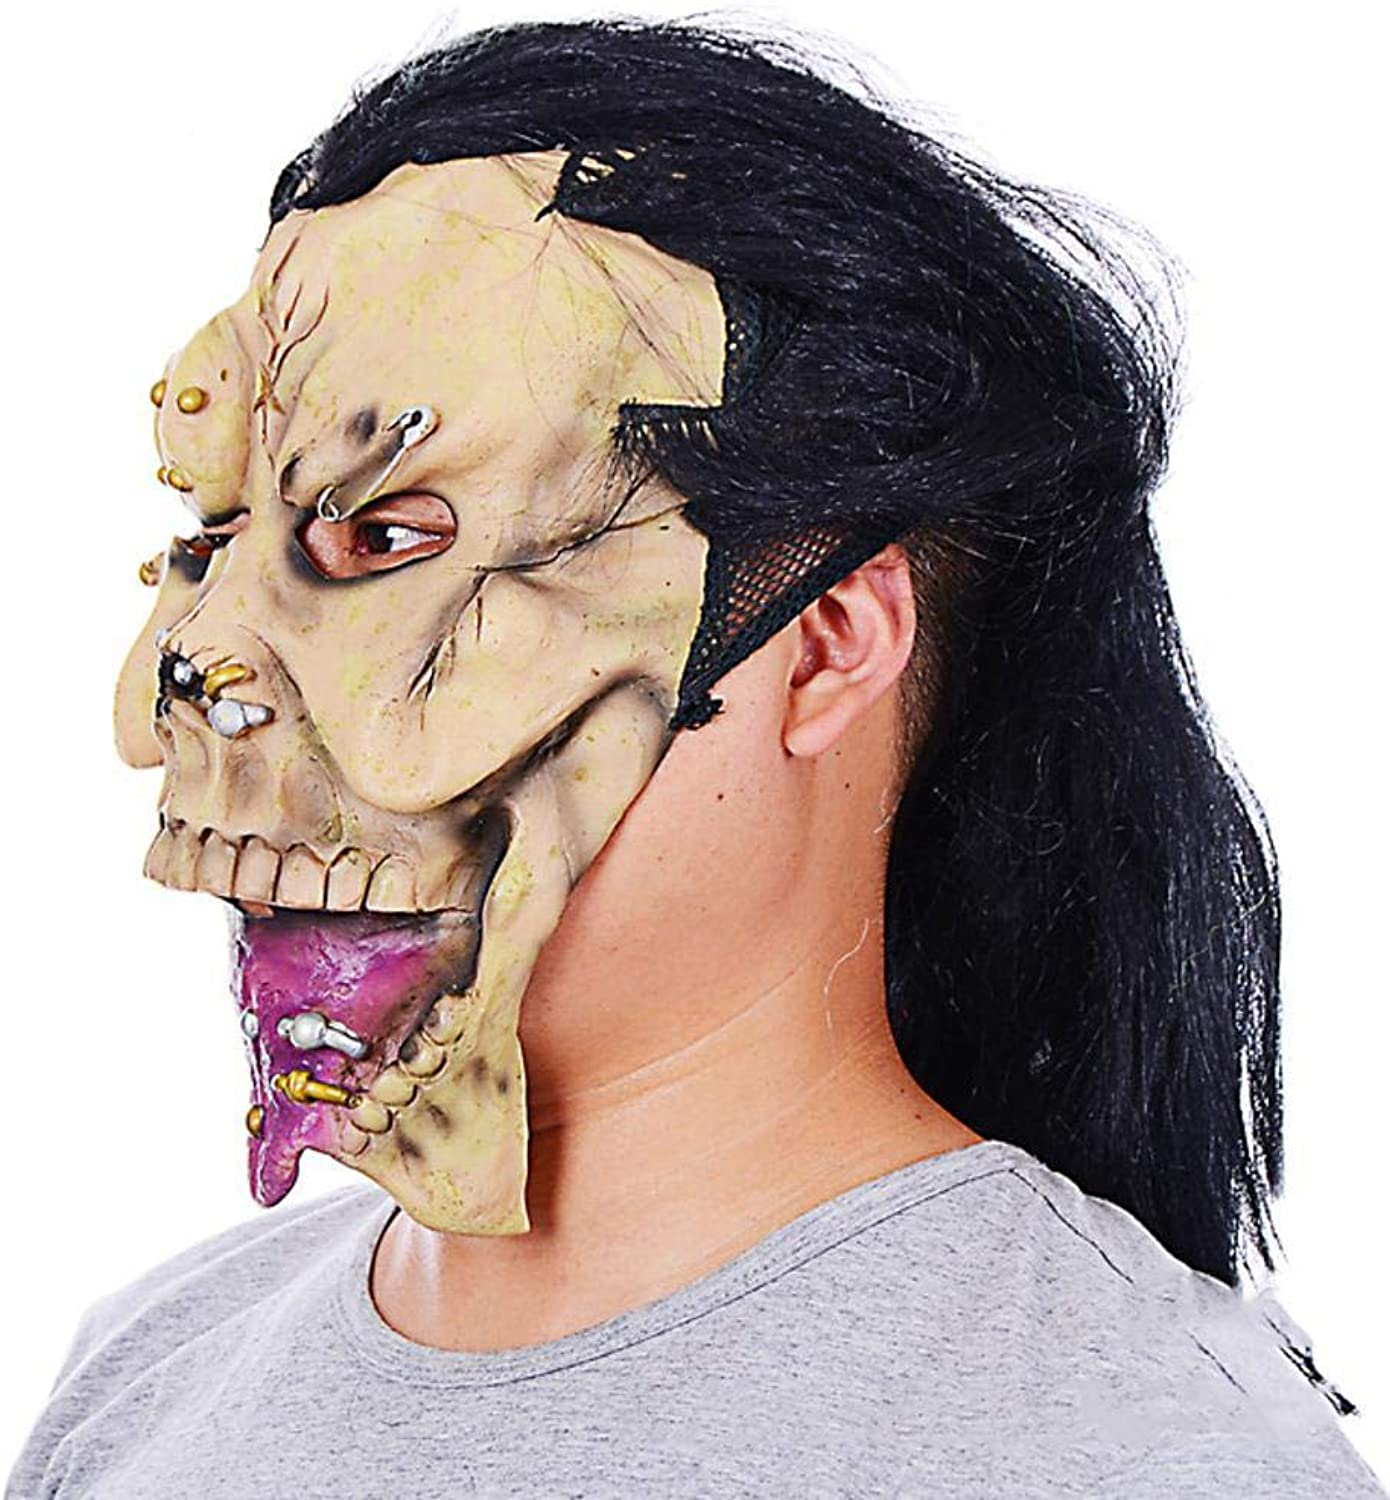 Rwdacfs Halloween mask,Horror Monster Scary mask Halloween Eco Latex Party mask Hood B07Q27X5G5 Fuxin    | Große Klassifizierung